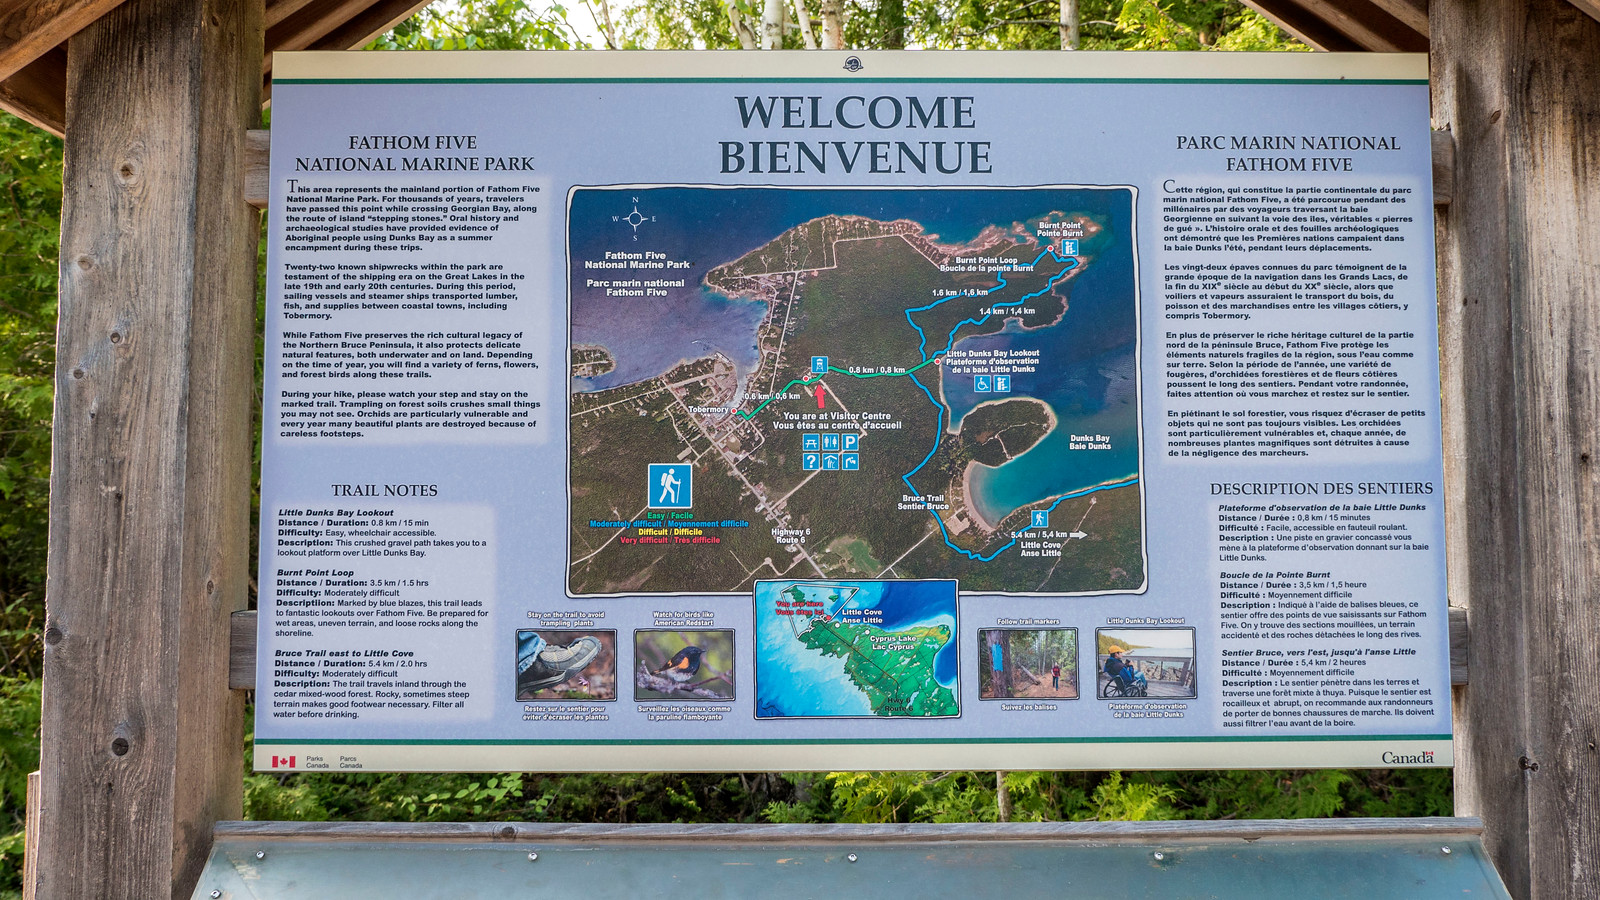 Fathom Five National Marine Park Map. Best Bruce Peninsula Hiking Trails for Nature Lovers.